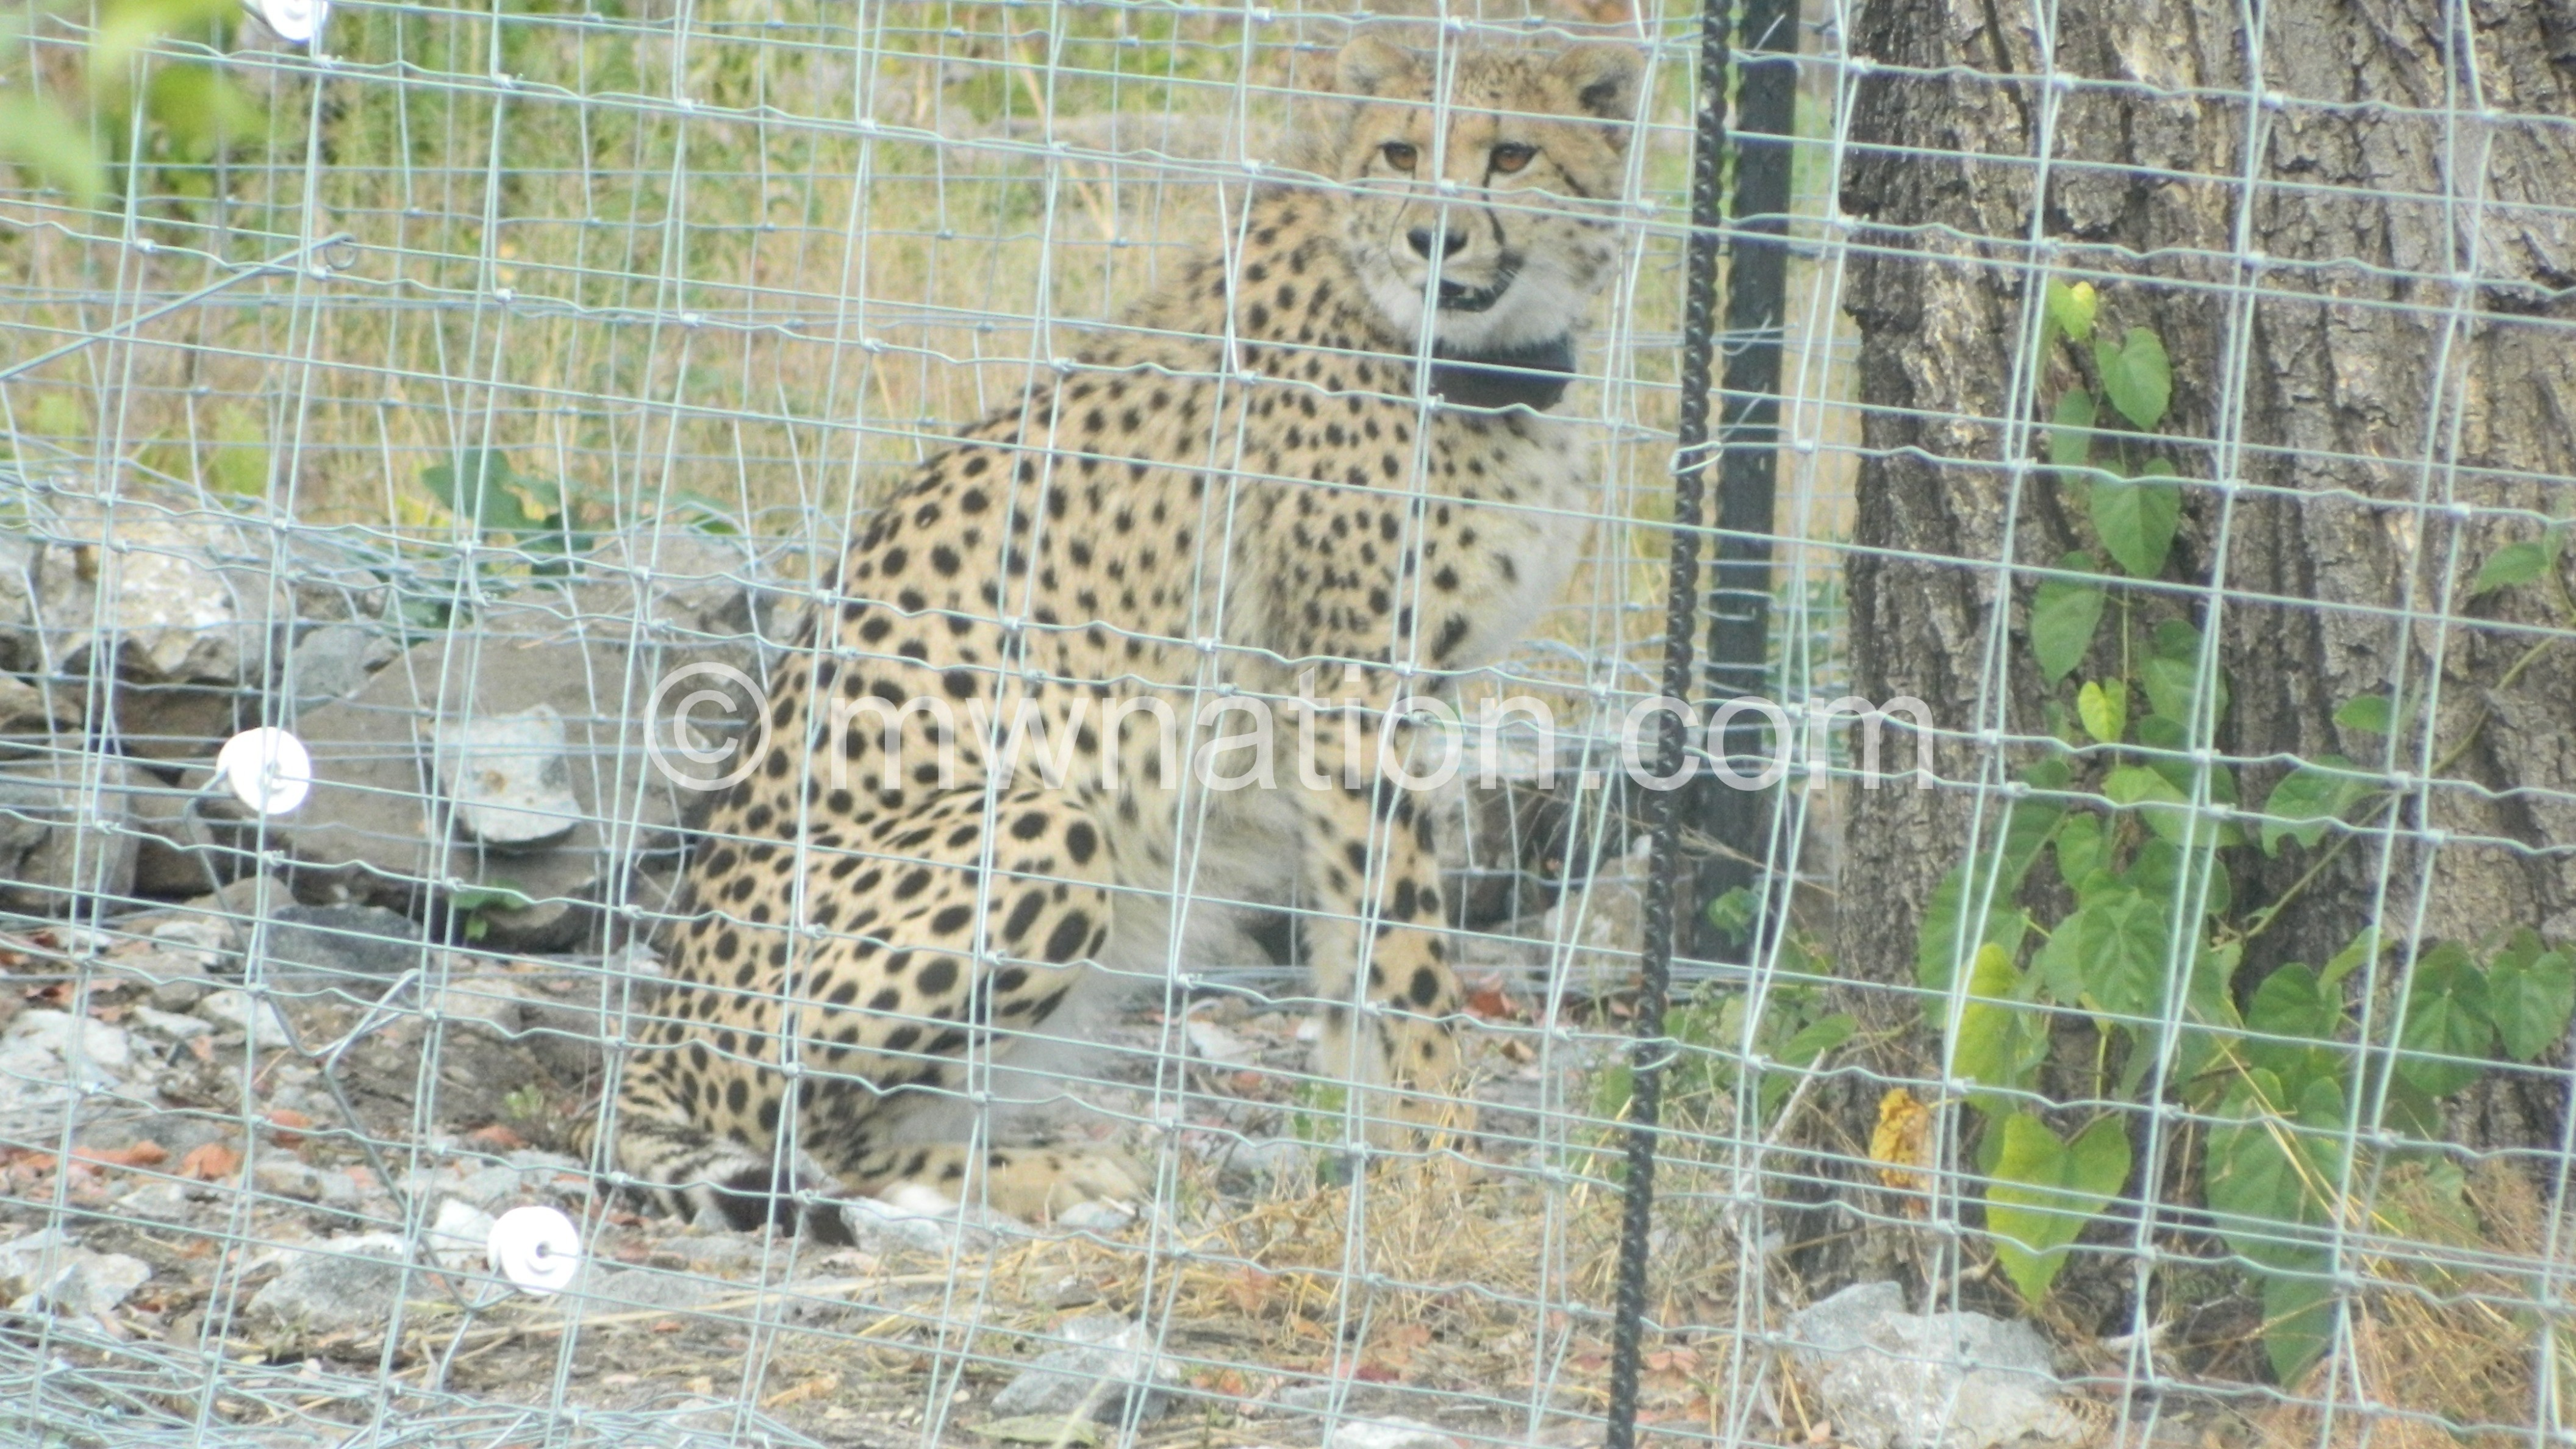 One of the cheetahs spotted in the boma | The Nation Online